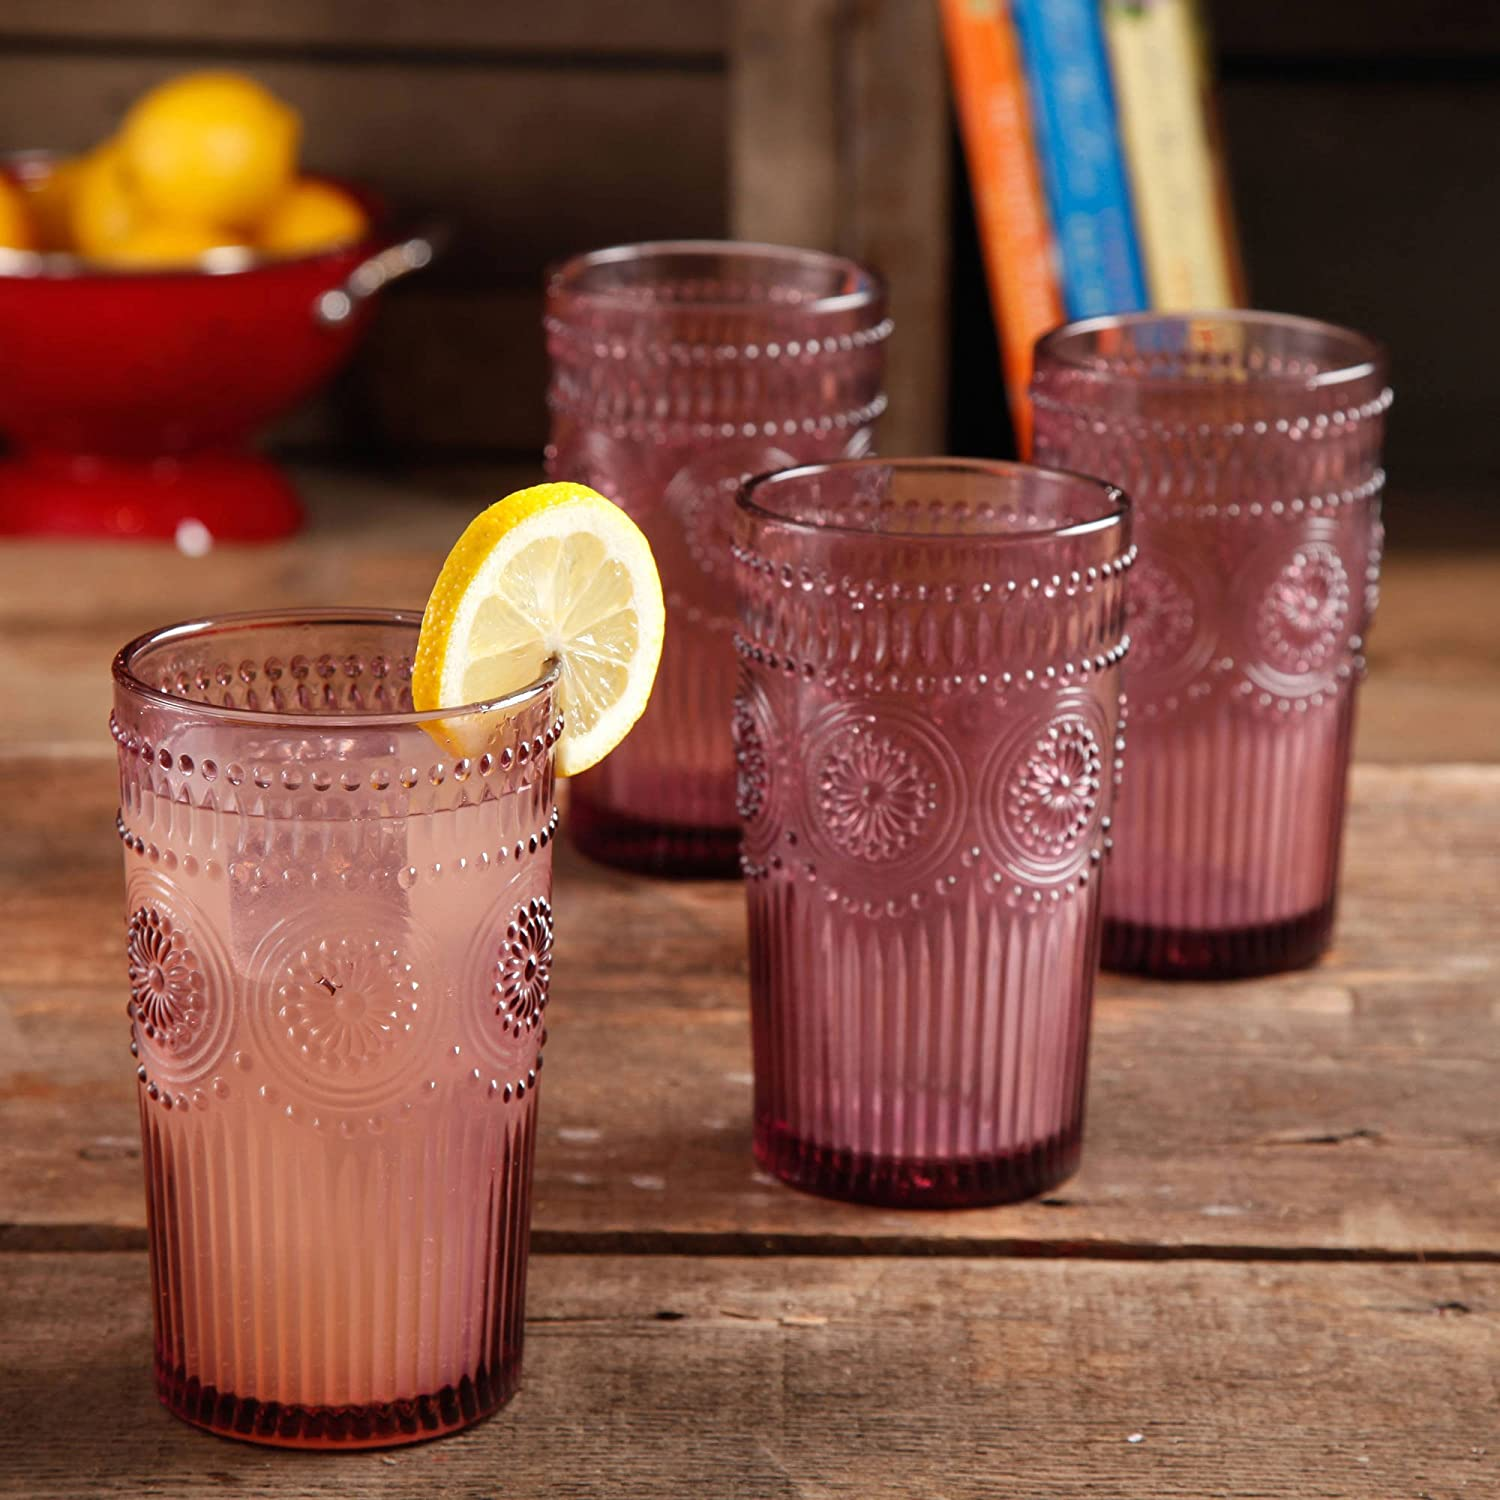 The Pioneer Woman Adeline 16-Ounce Emboss Glass Tumblers Set of 4 (Plum) Made in USA